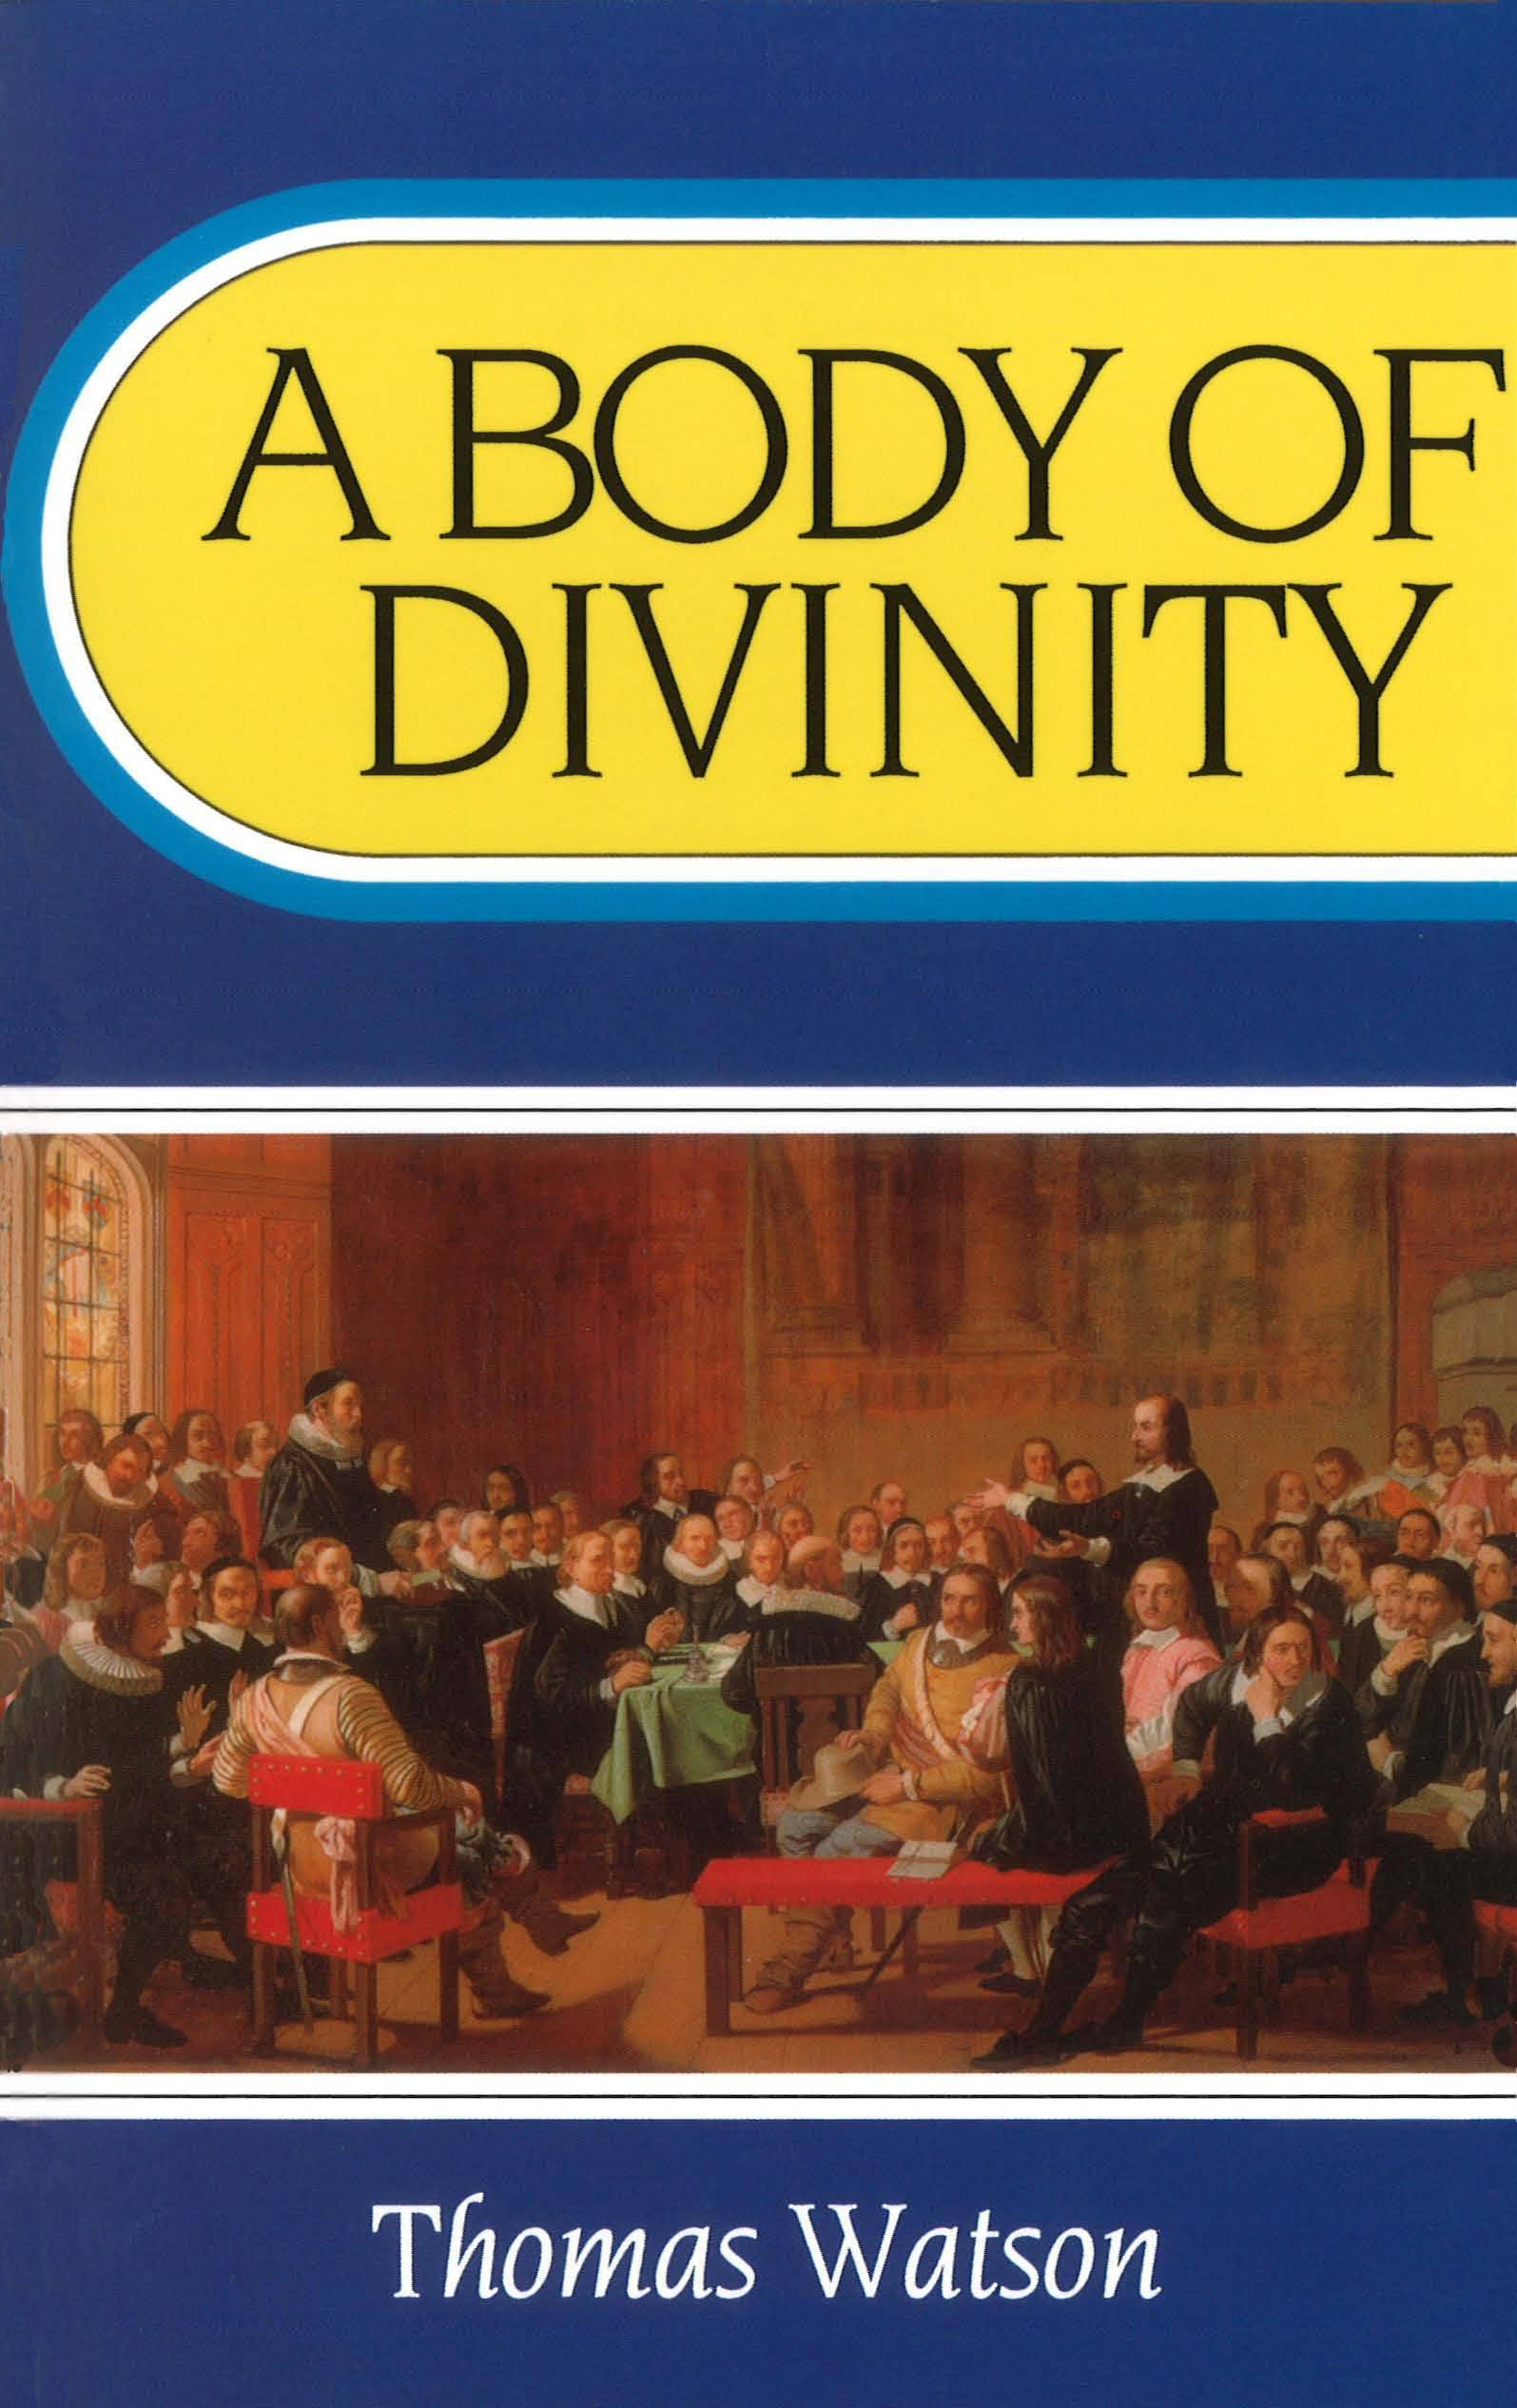 Book Cover for 'A Body of Divinity'